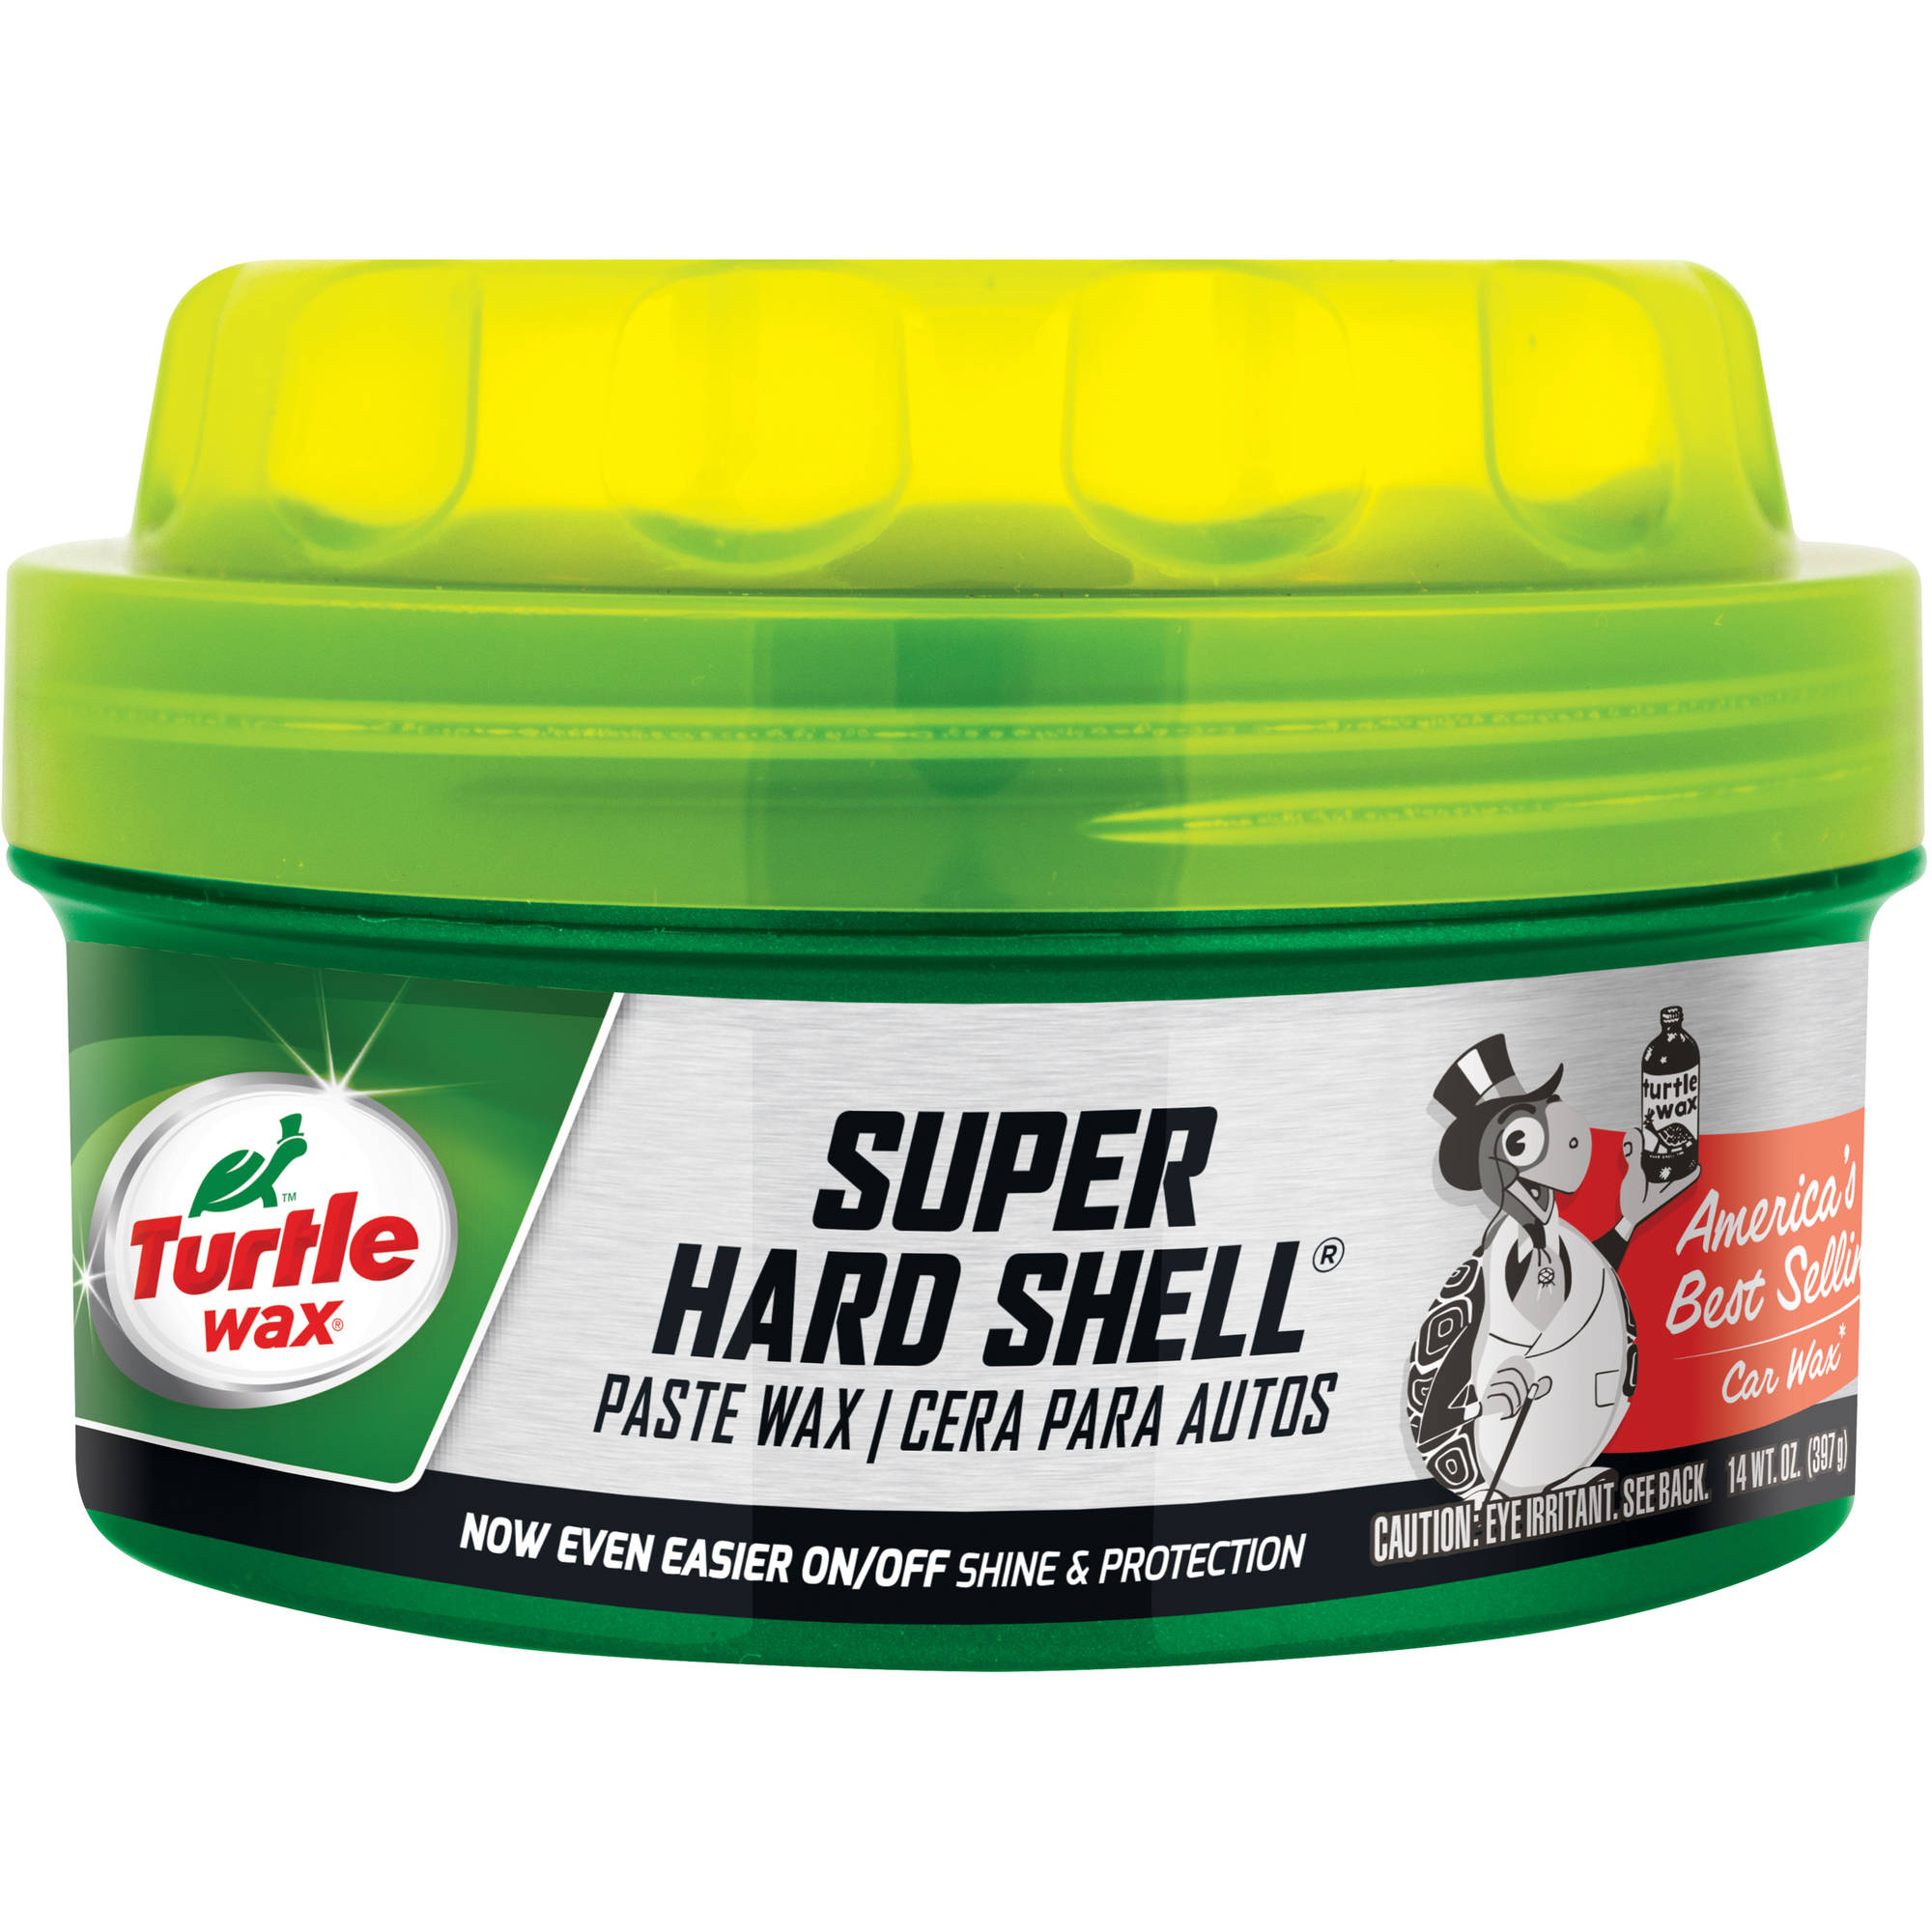 Turtle Wax® Super Hard Shell Paste Wax